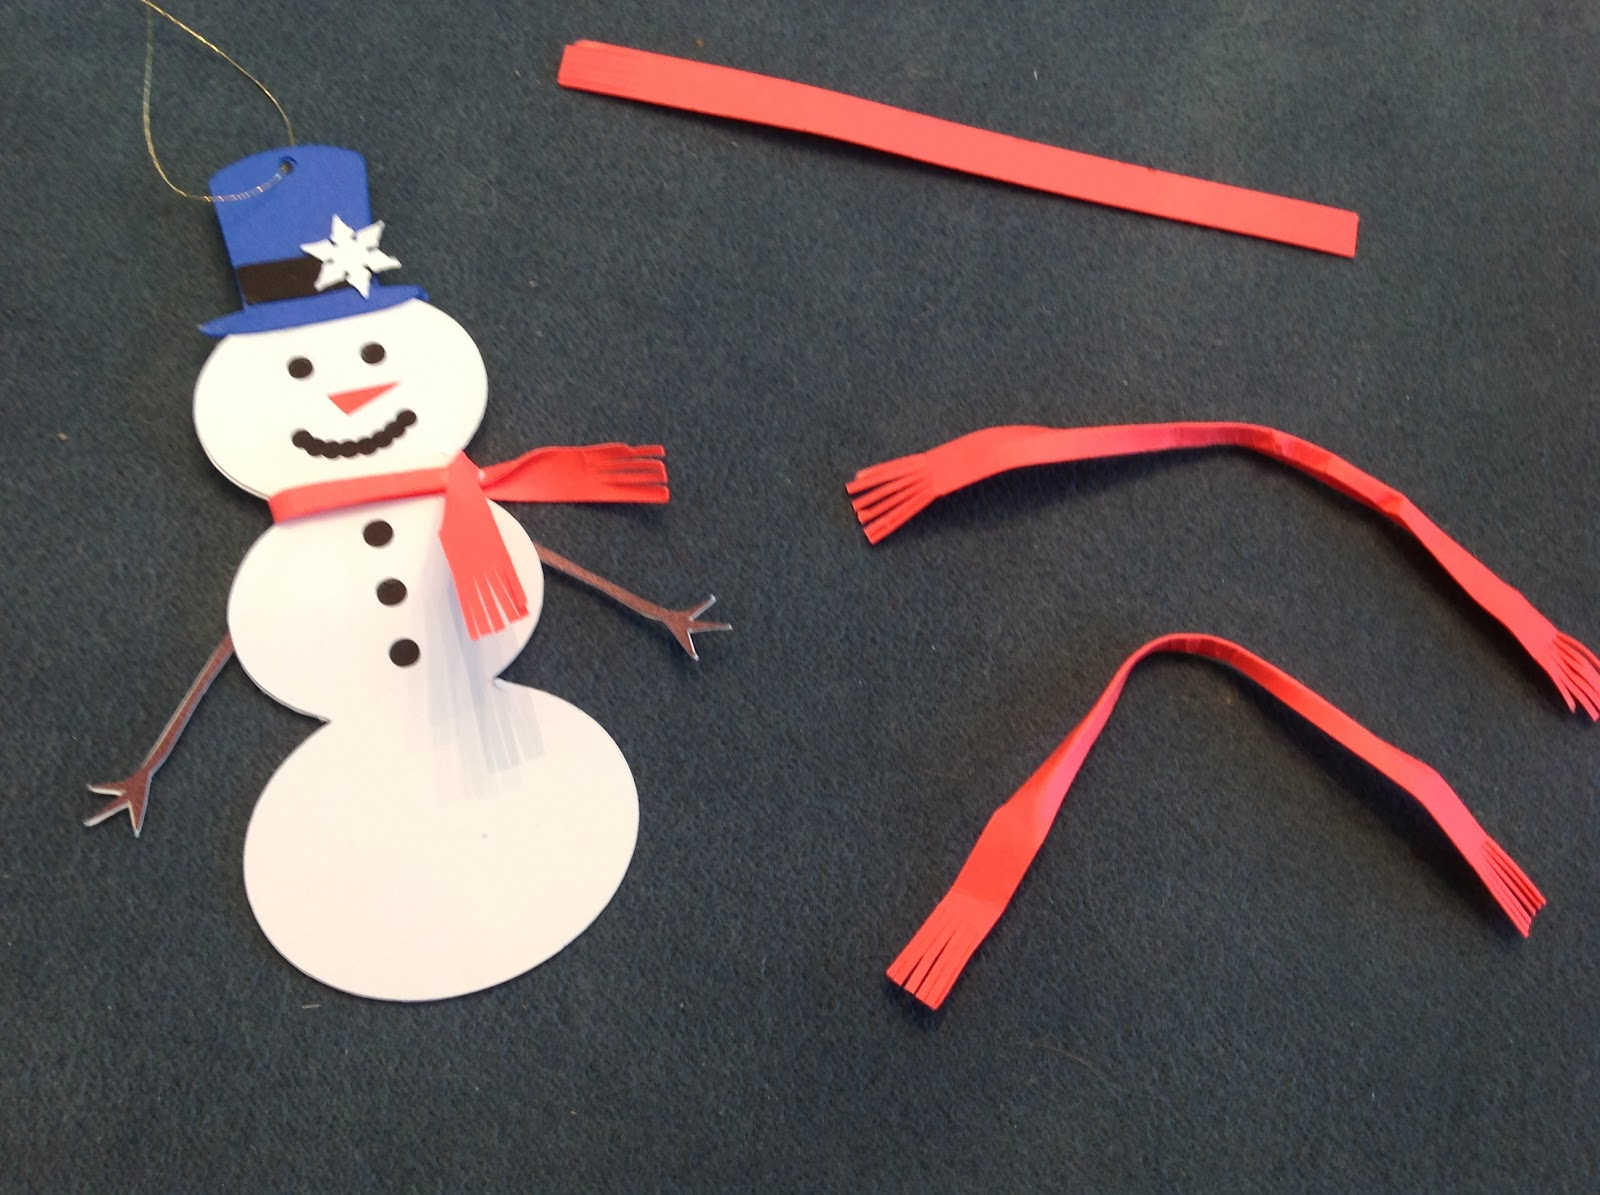 Papercrafts and other fun things when it snows make for How to make snowman with paper